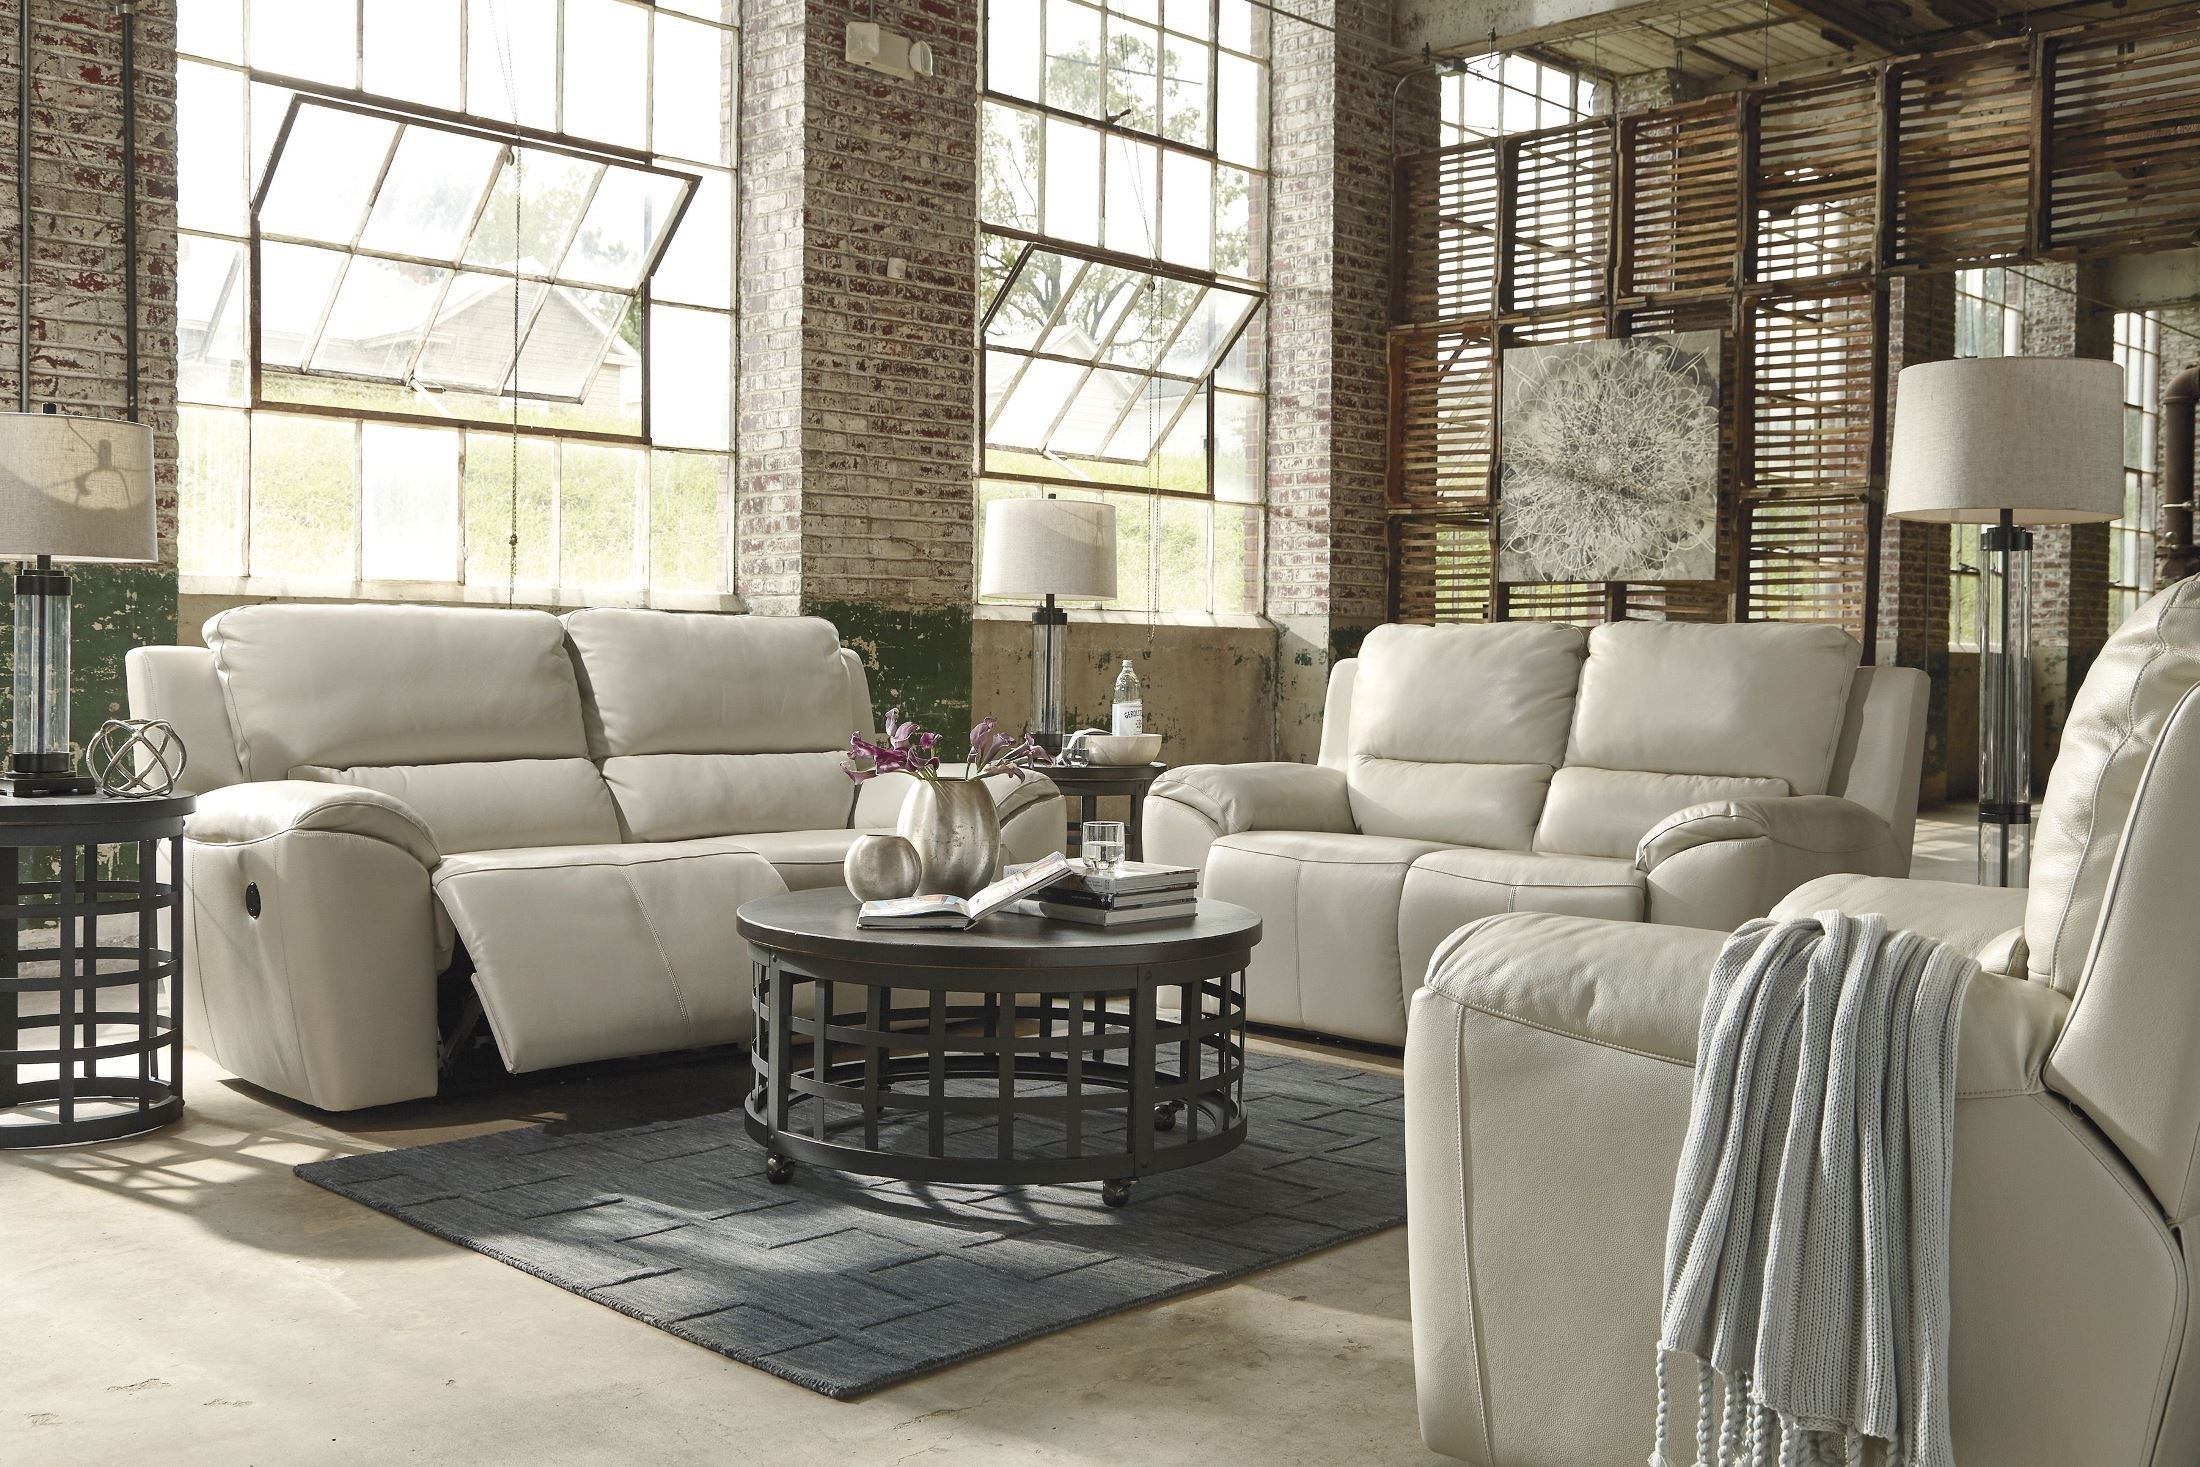 Reclining sofa Sets Stunning Valeton Cream Power Reclining Living Room Set From ashley Layout